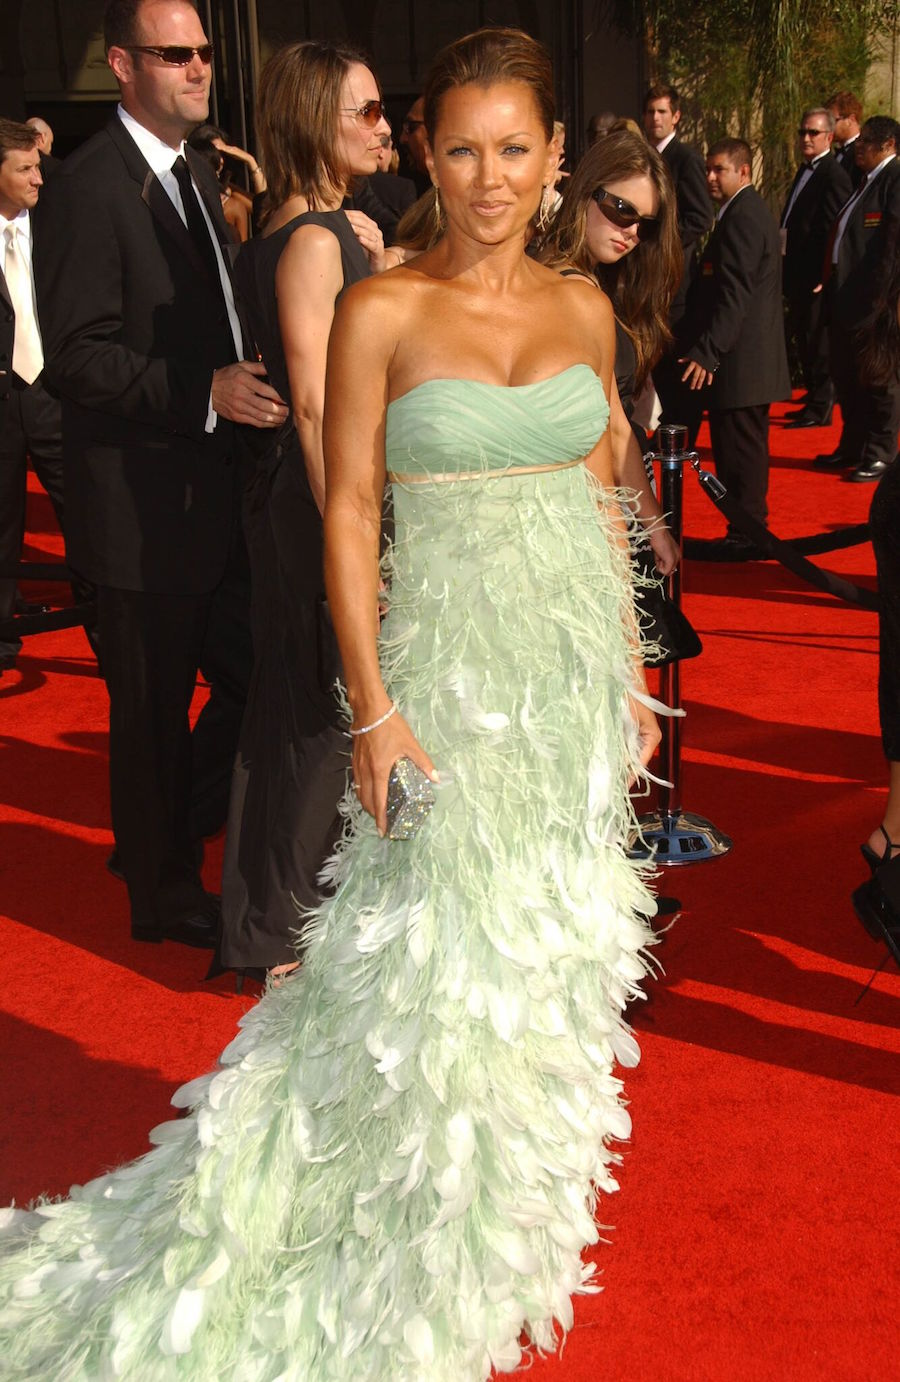 Vanessa Williams in a Kevan Hall gown at the 2007 Emmy Awards